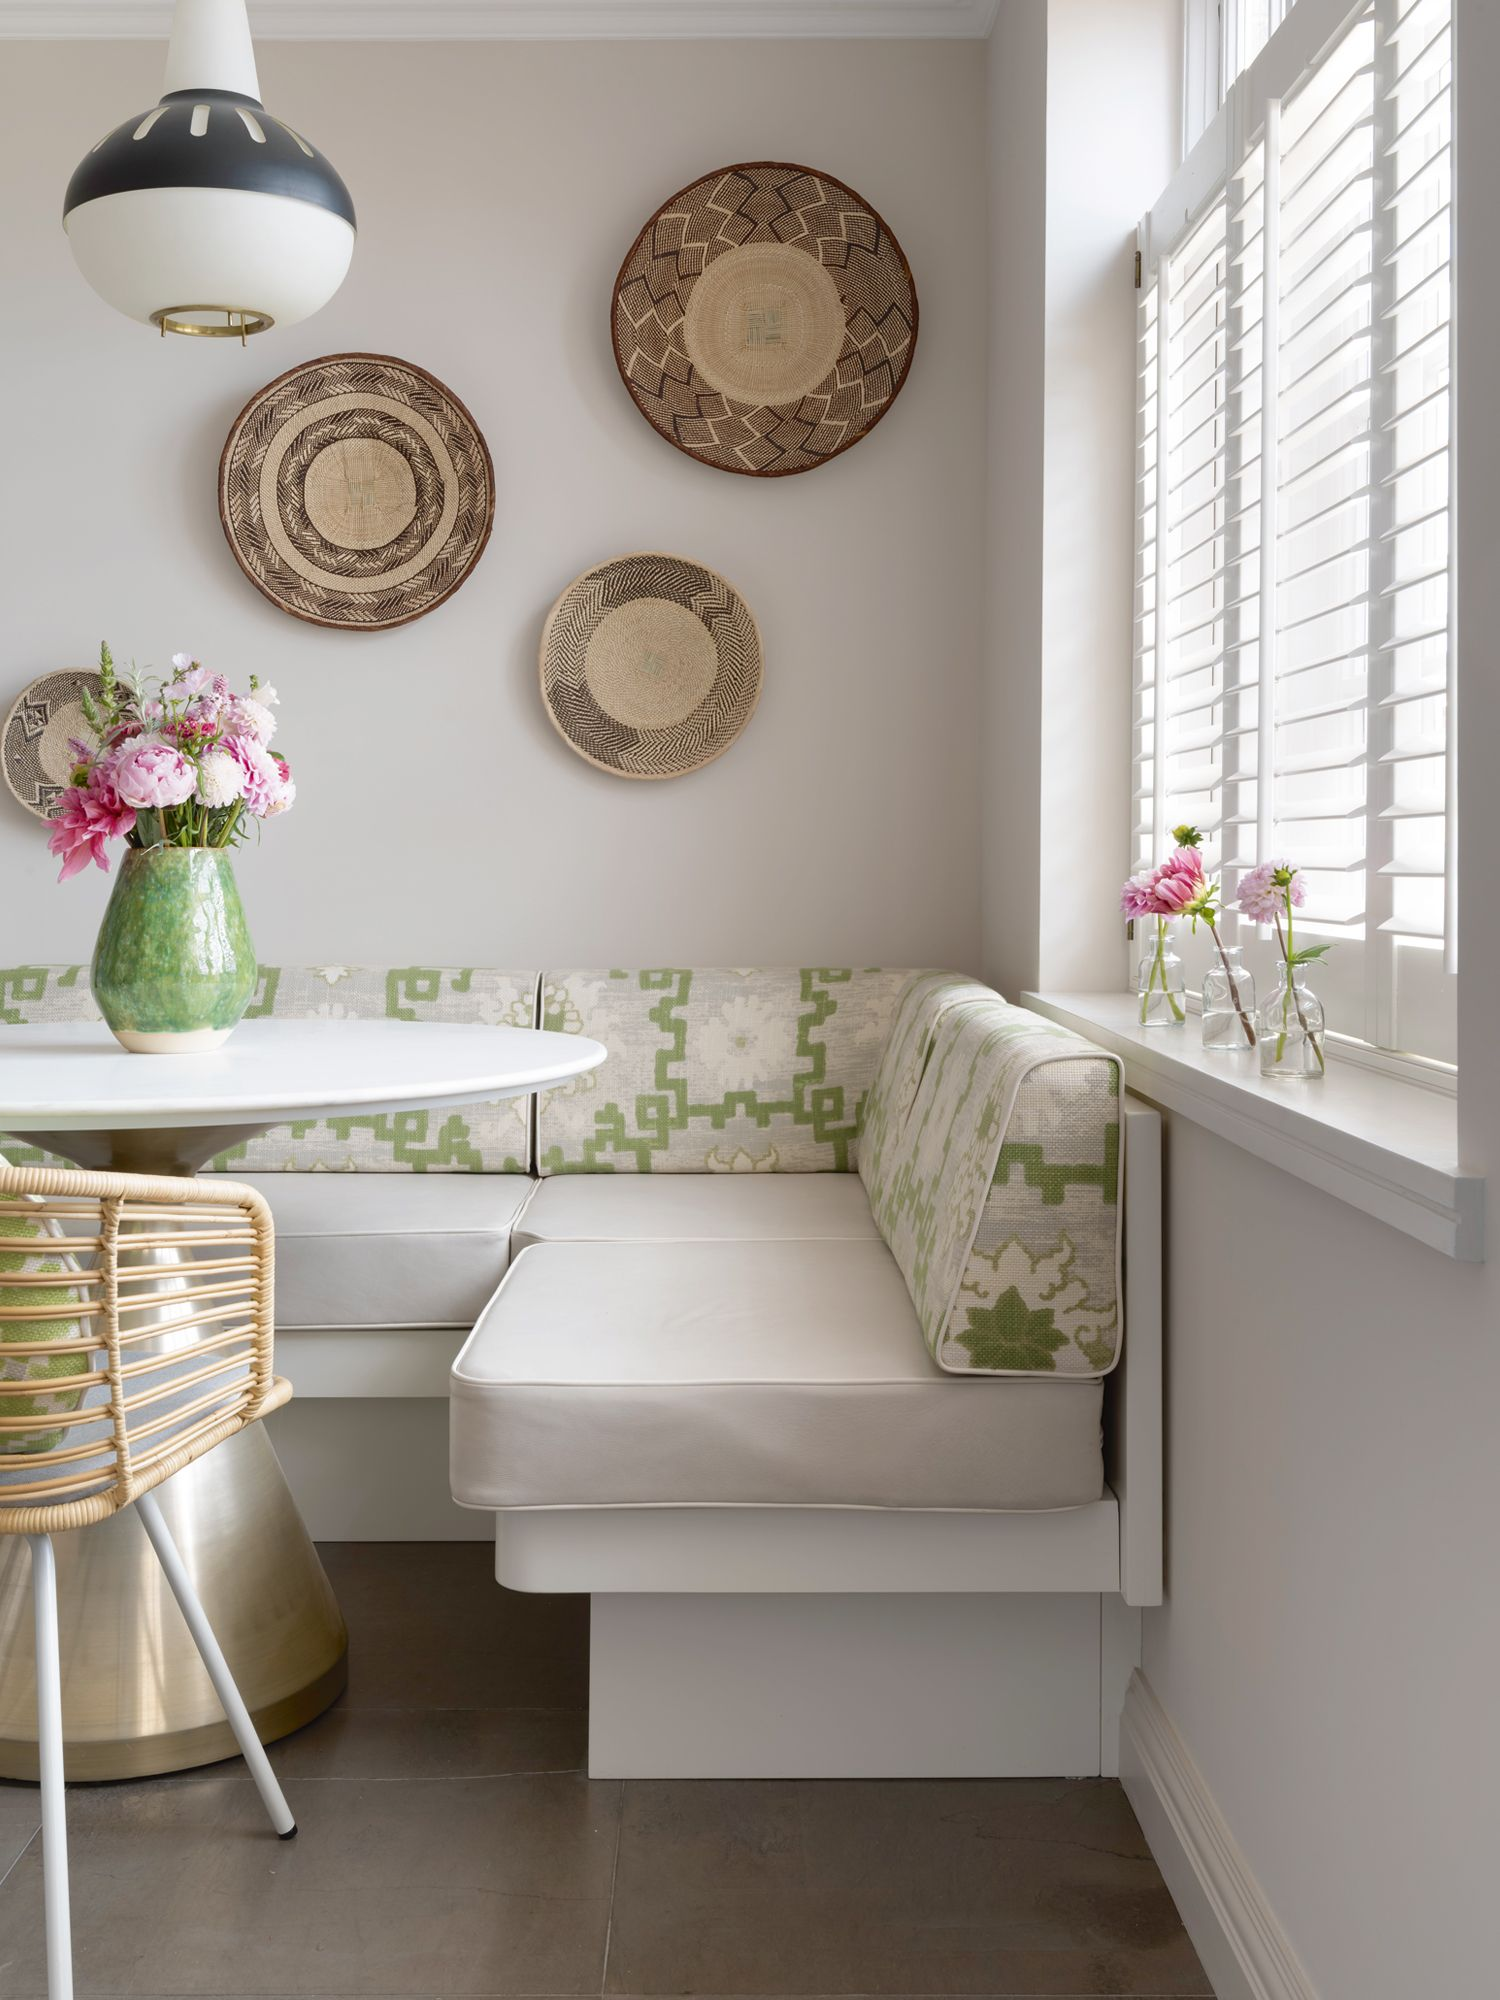 Hints of soft green and pink lend a welcoming air to this cosy nook